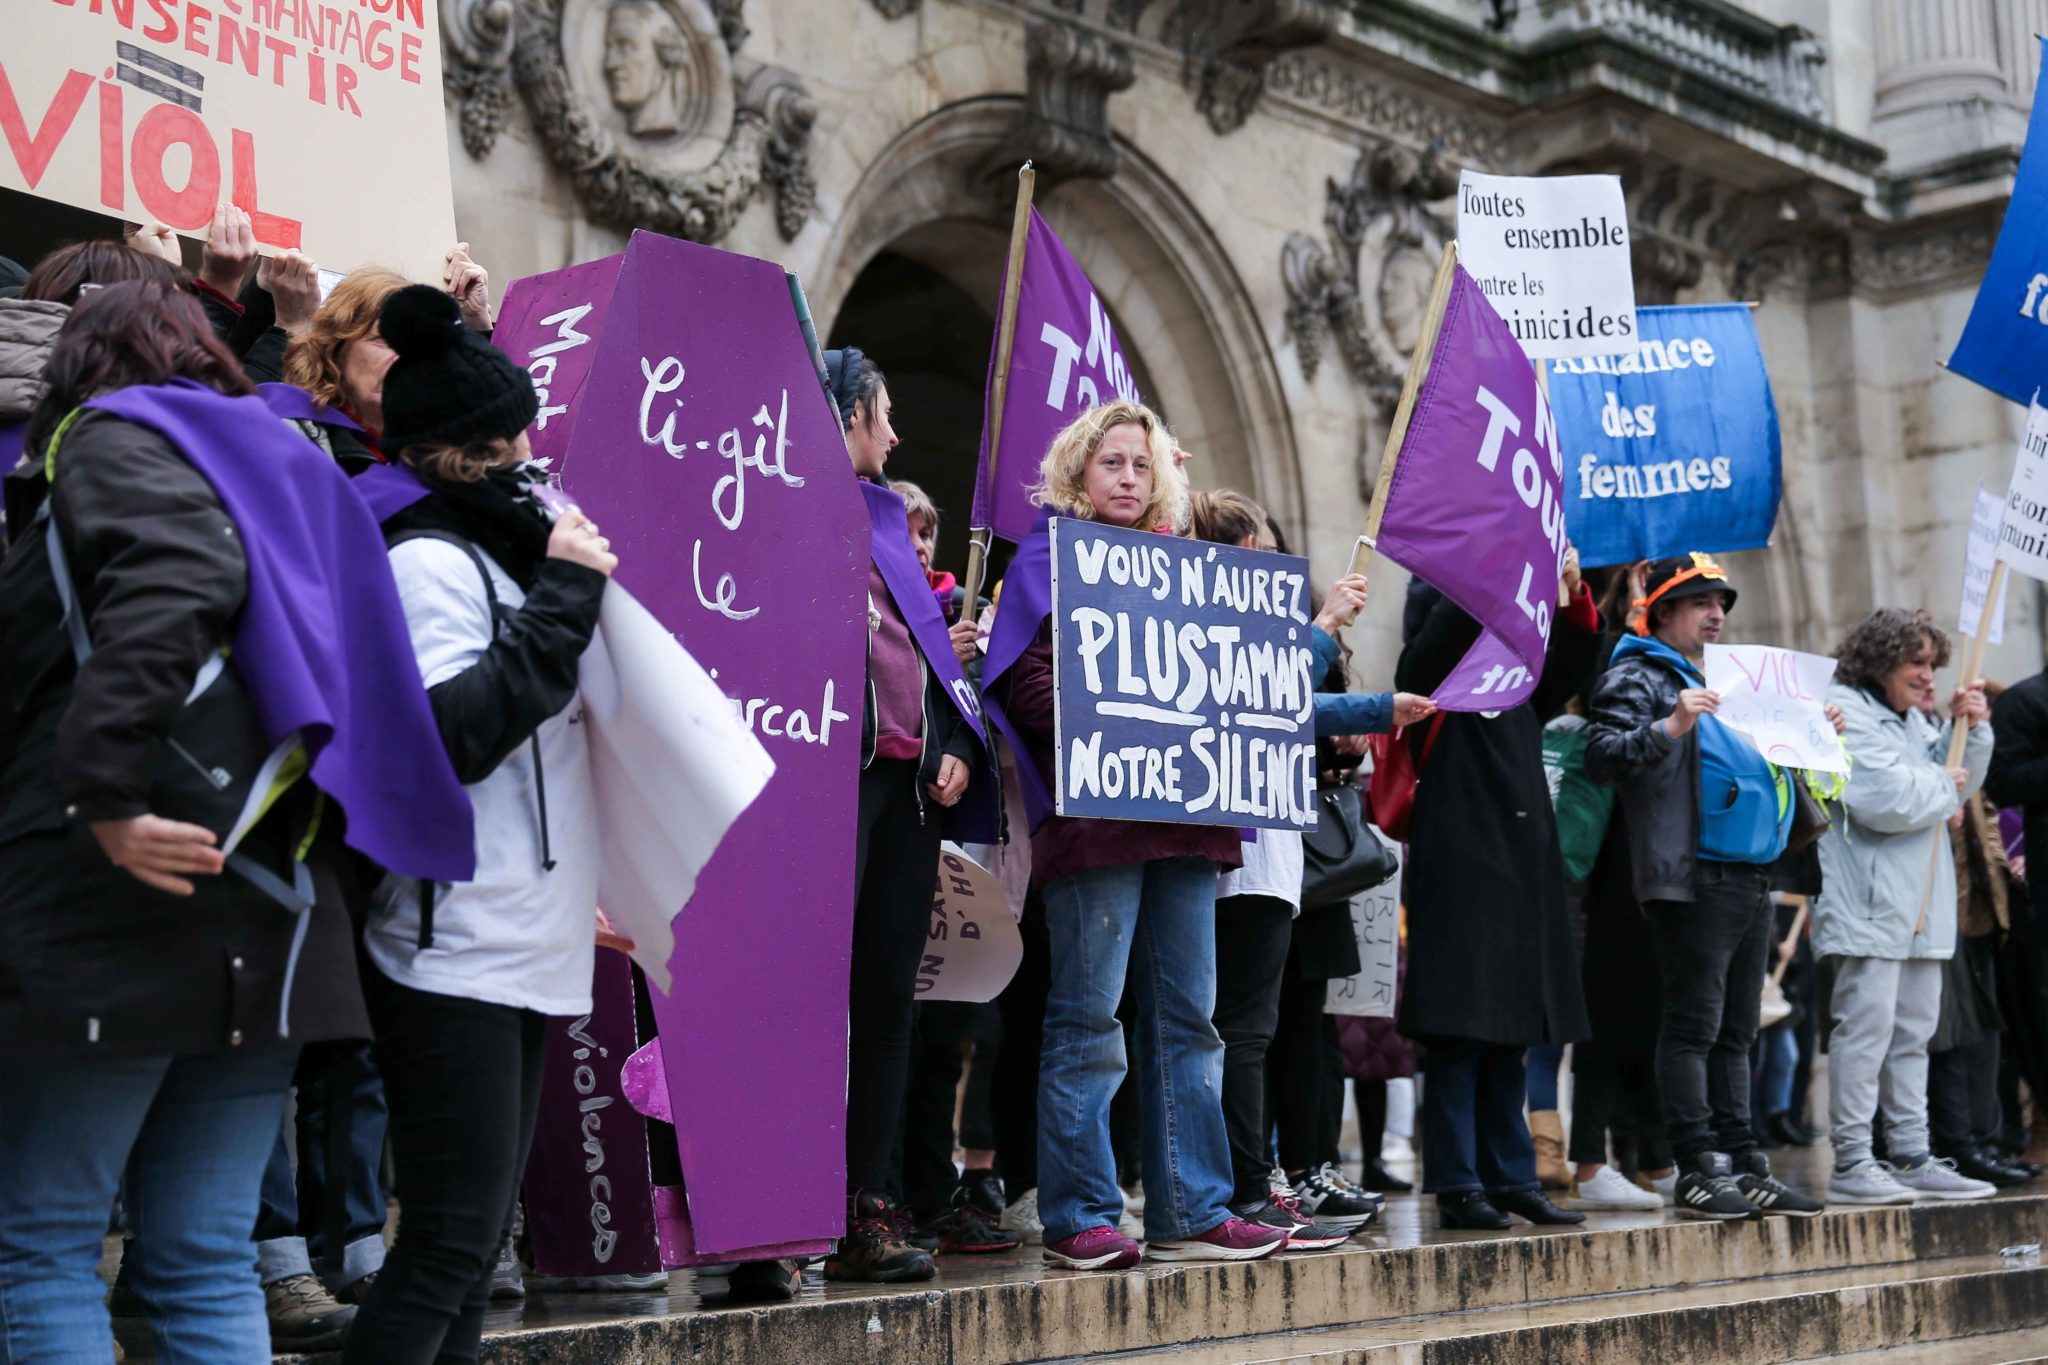 Women hold a purple coffin, flags and signs during a protest to condemn violence against women, on November 23, 2019, in Paris, in front of the Garnier Opera House. Wearing purple – the adopted colour of feminist struggles – activists are taking to the